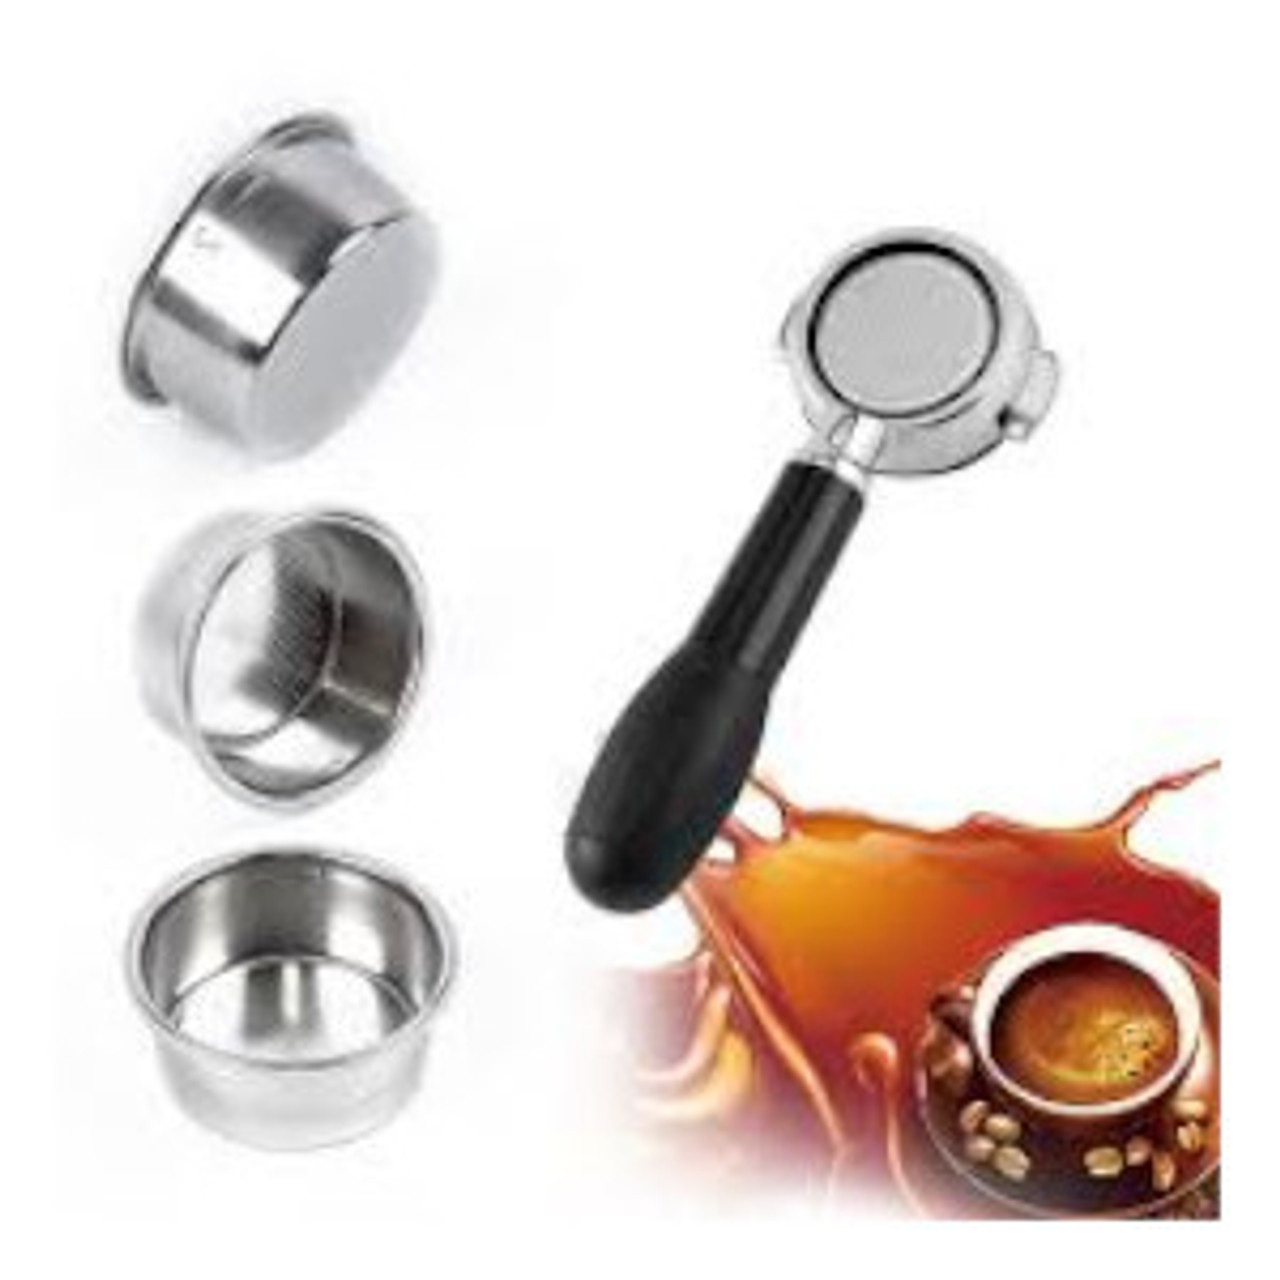 Coffee Machine Parts and Supplies